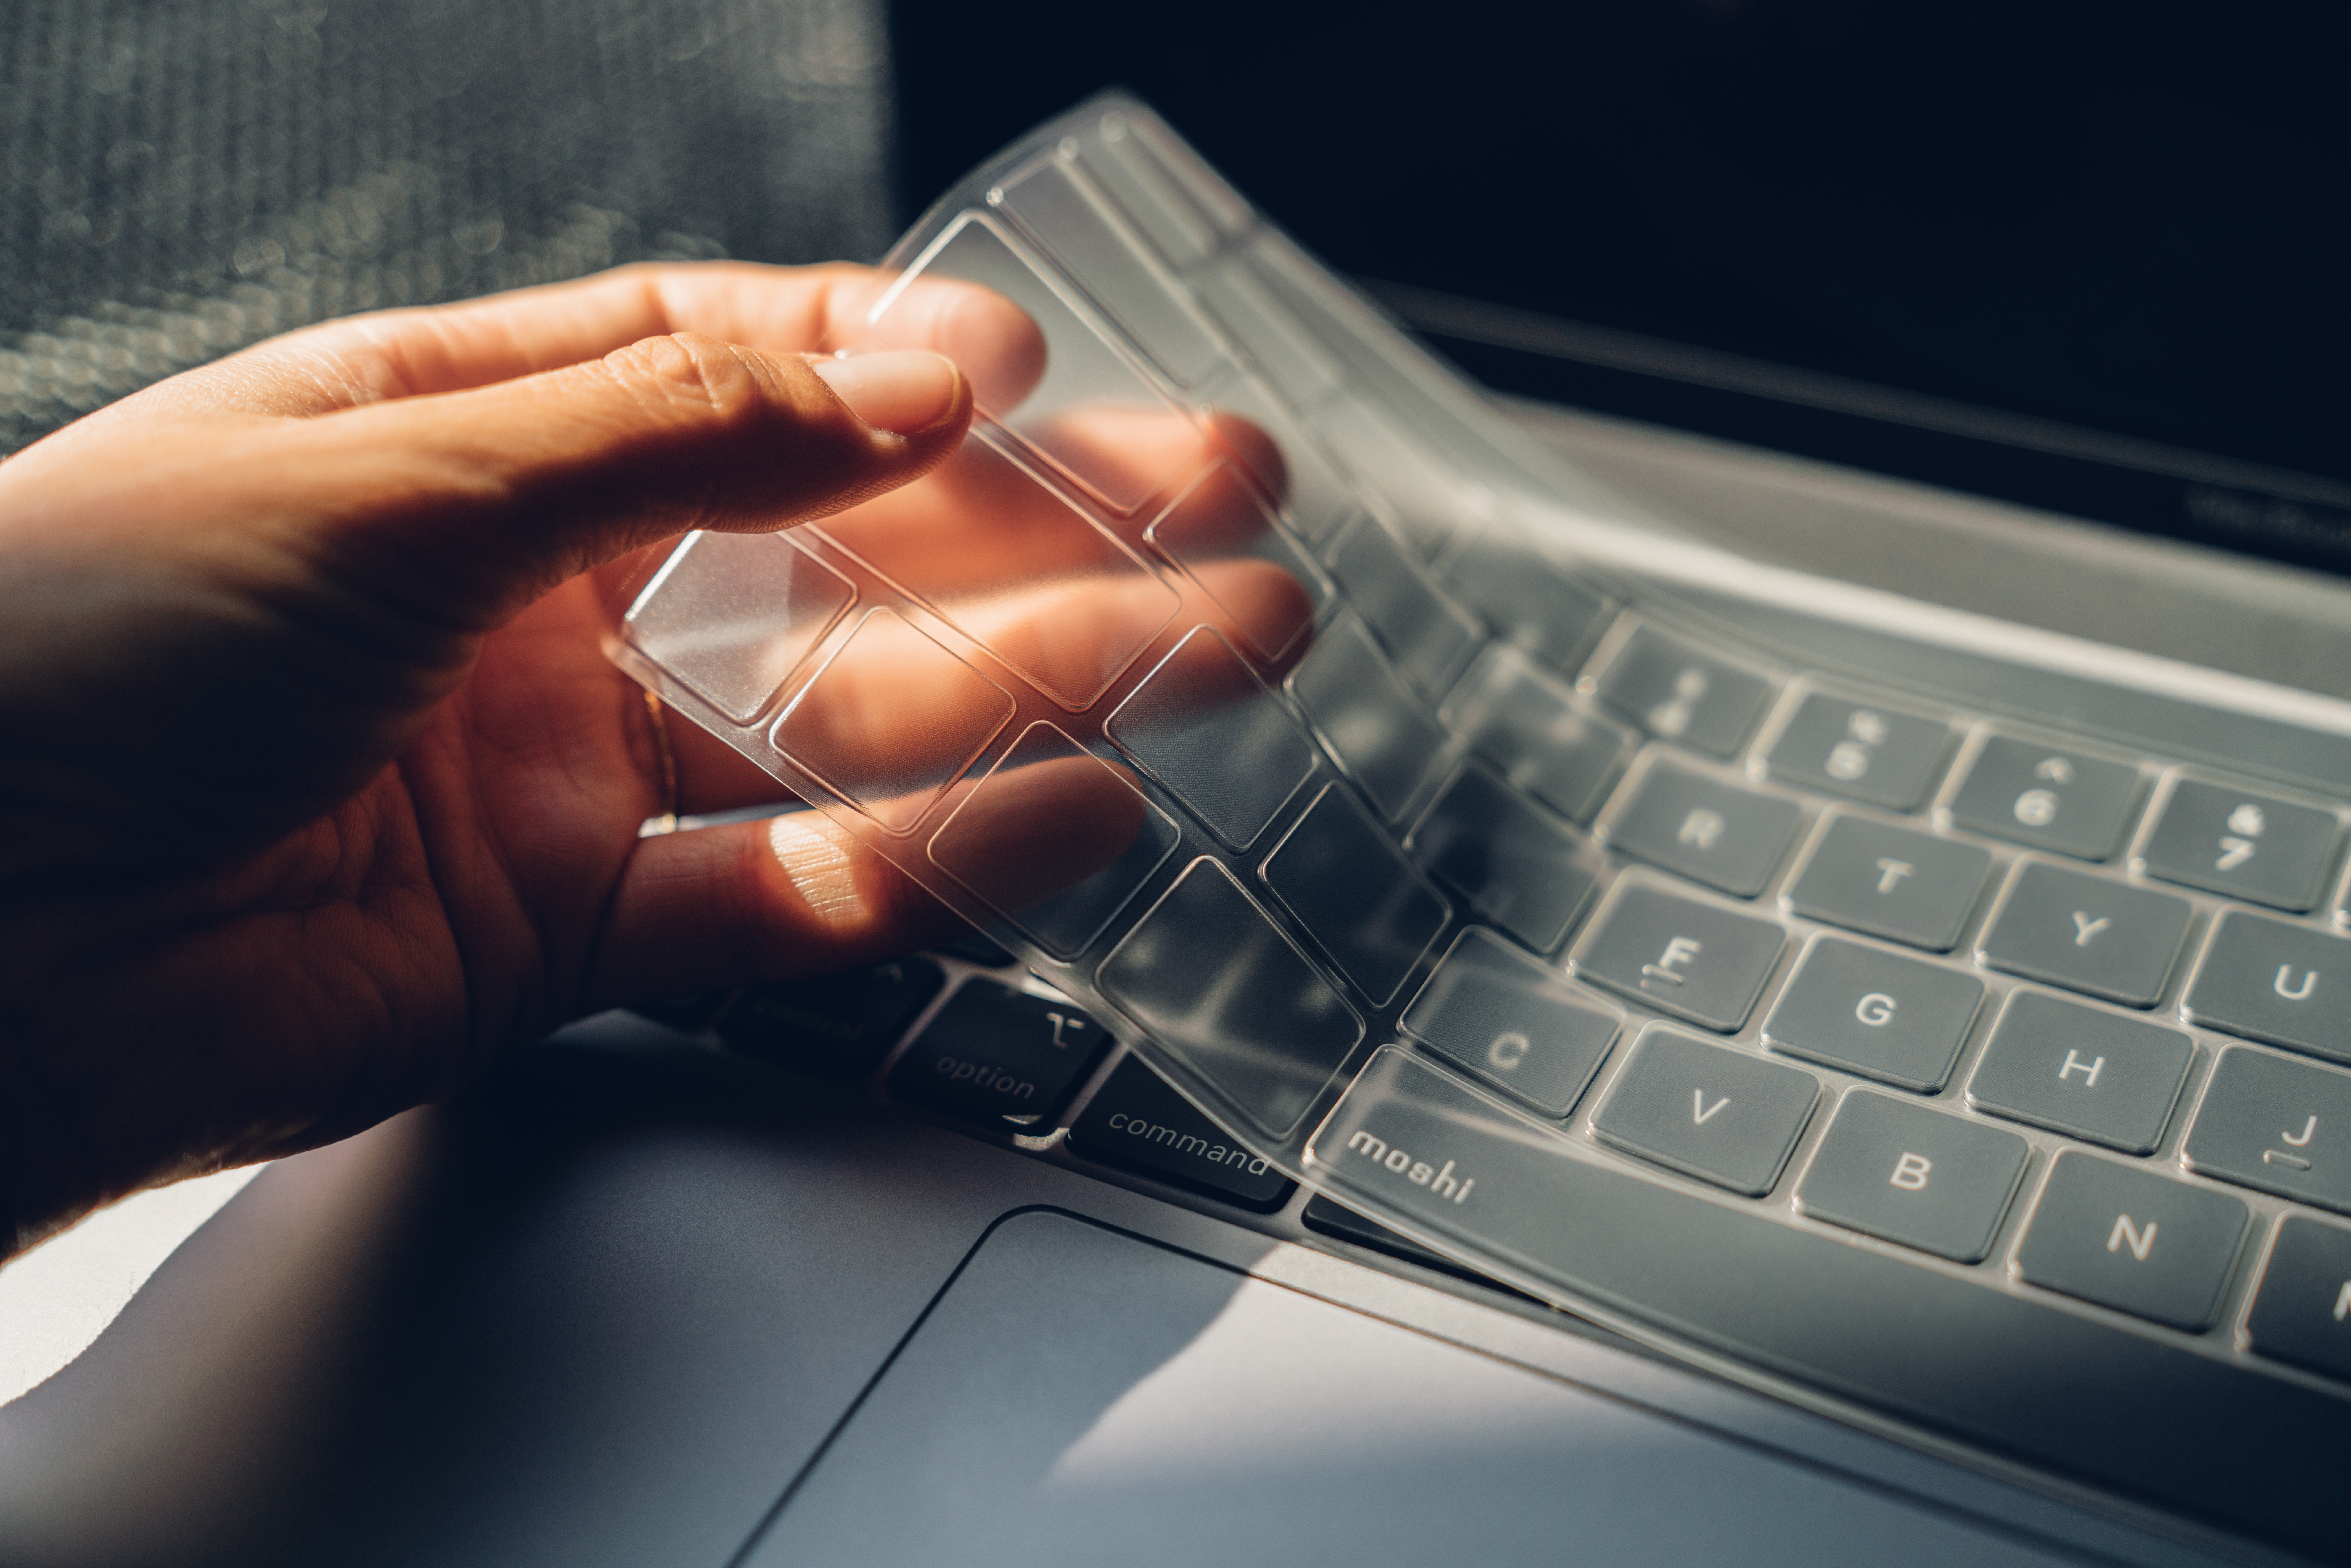 A hand removing a Moshi ClearGuard keyboard protector from a MacBook keyboard